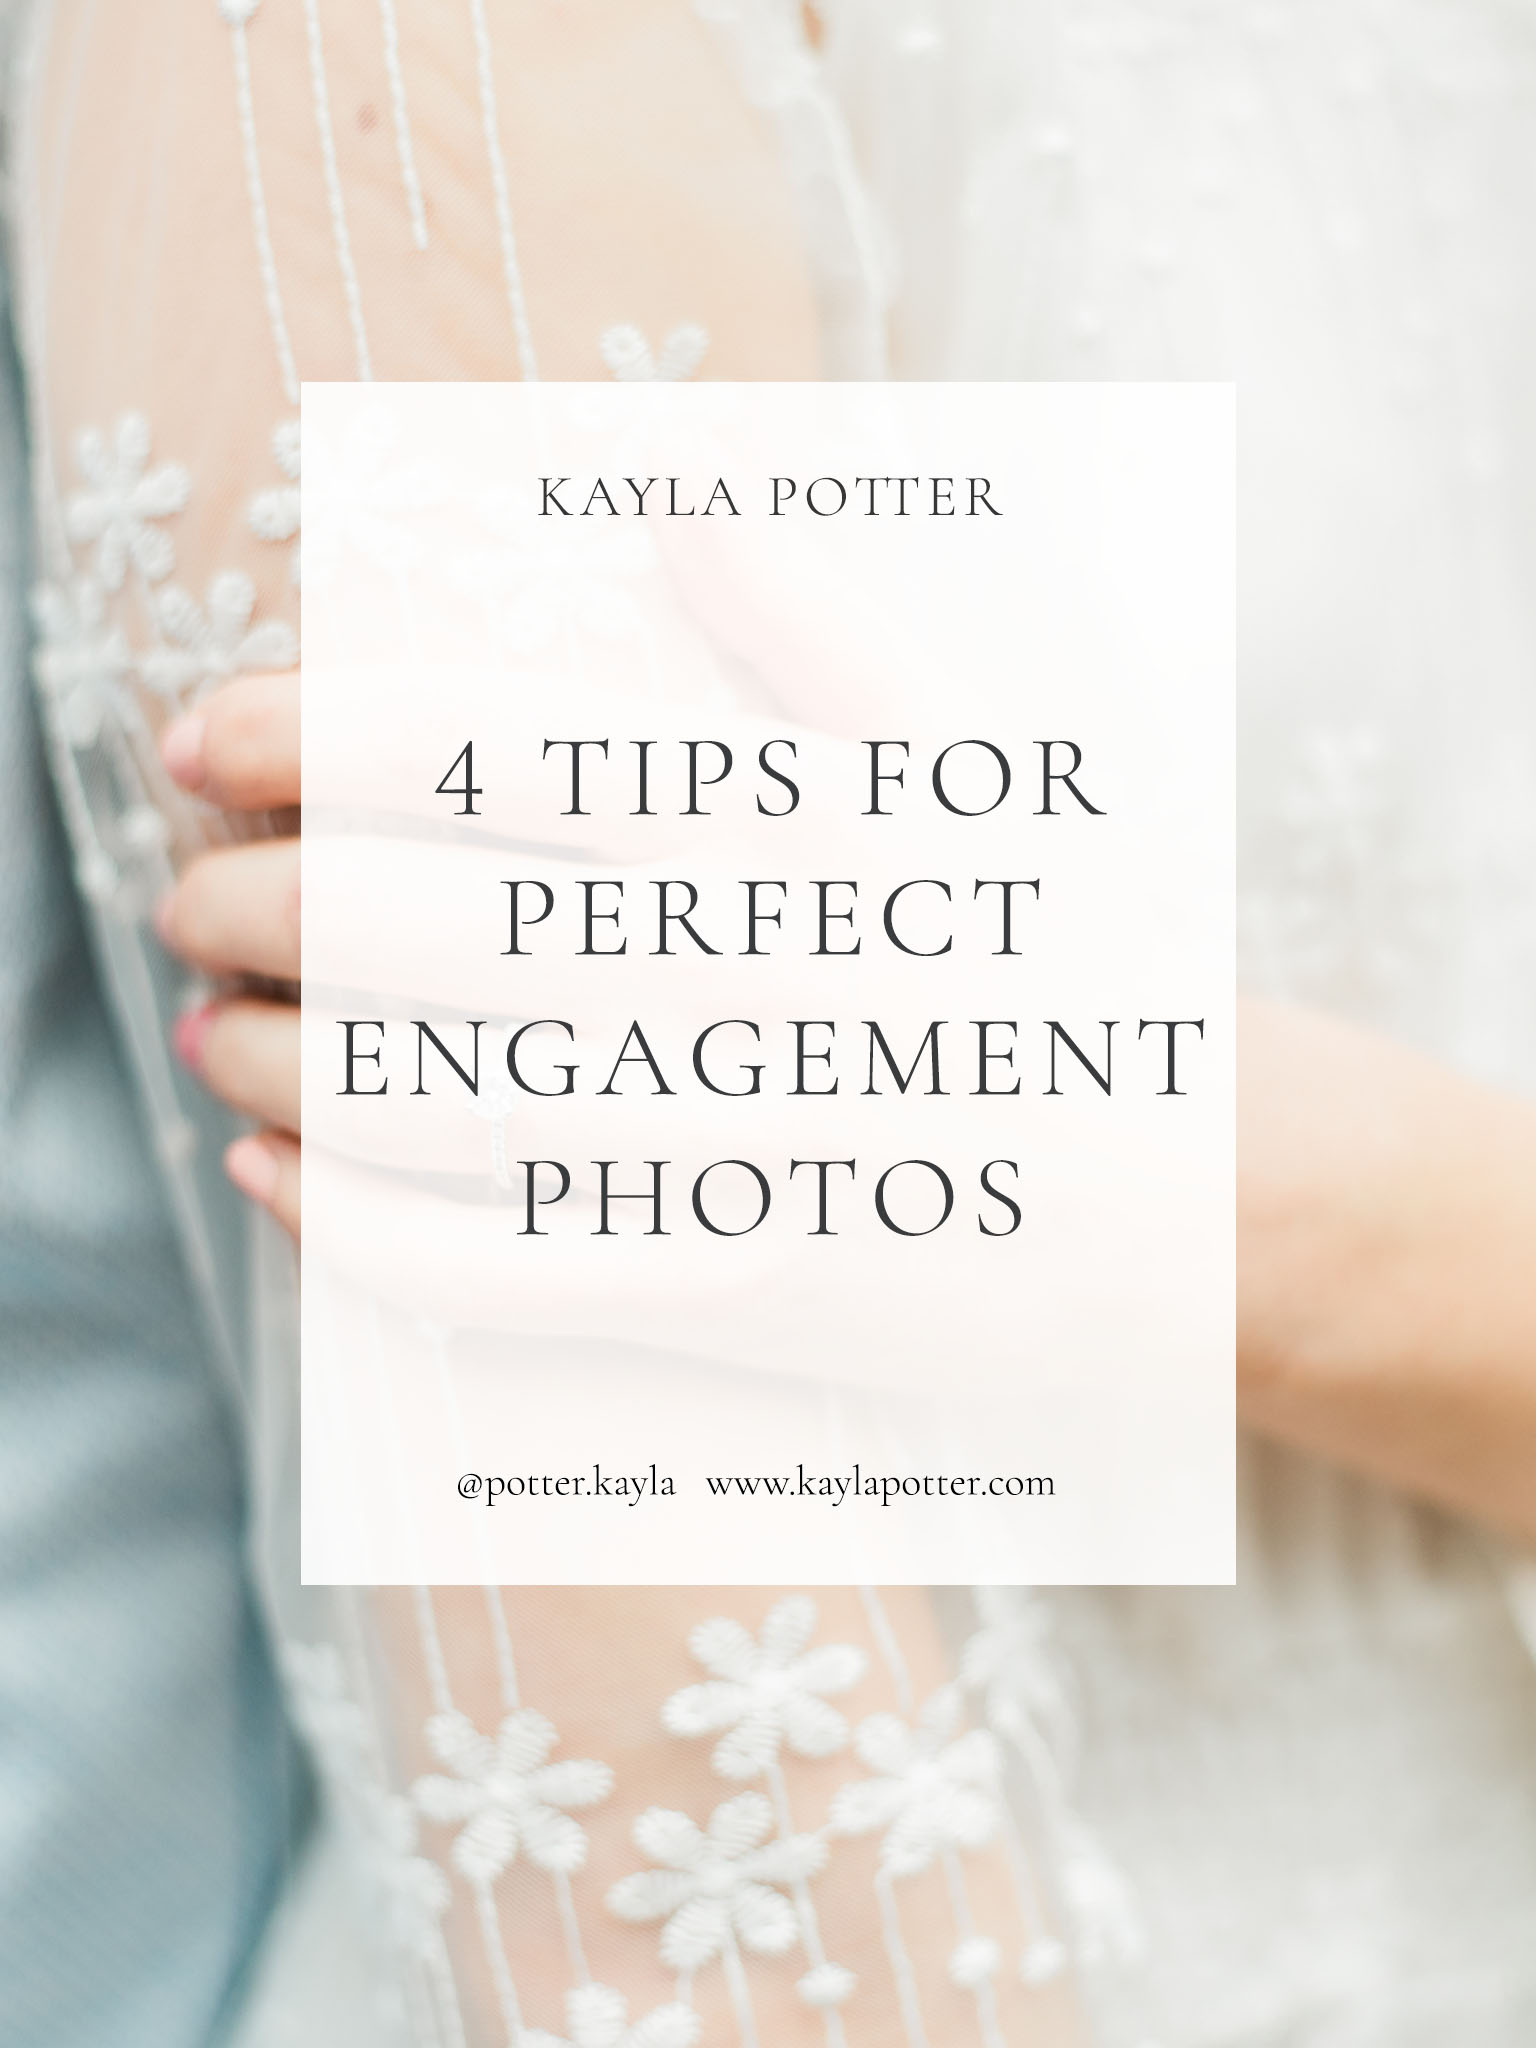 4 Tips for Perfect Engagement Photos